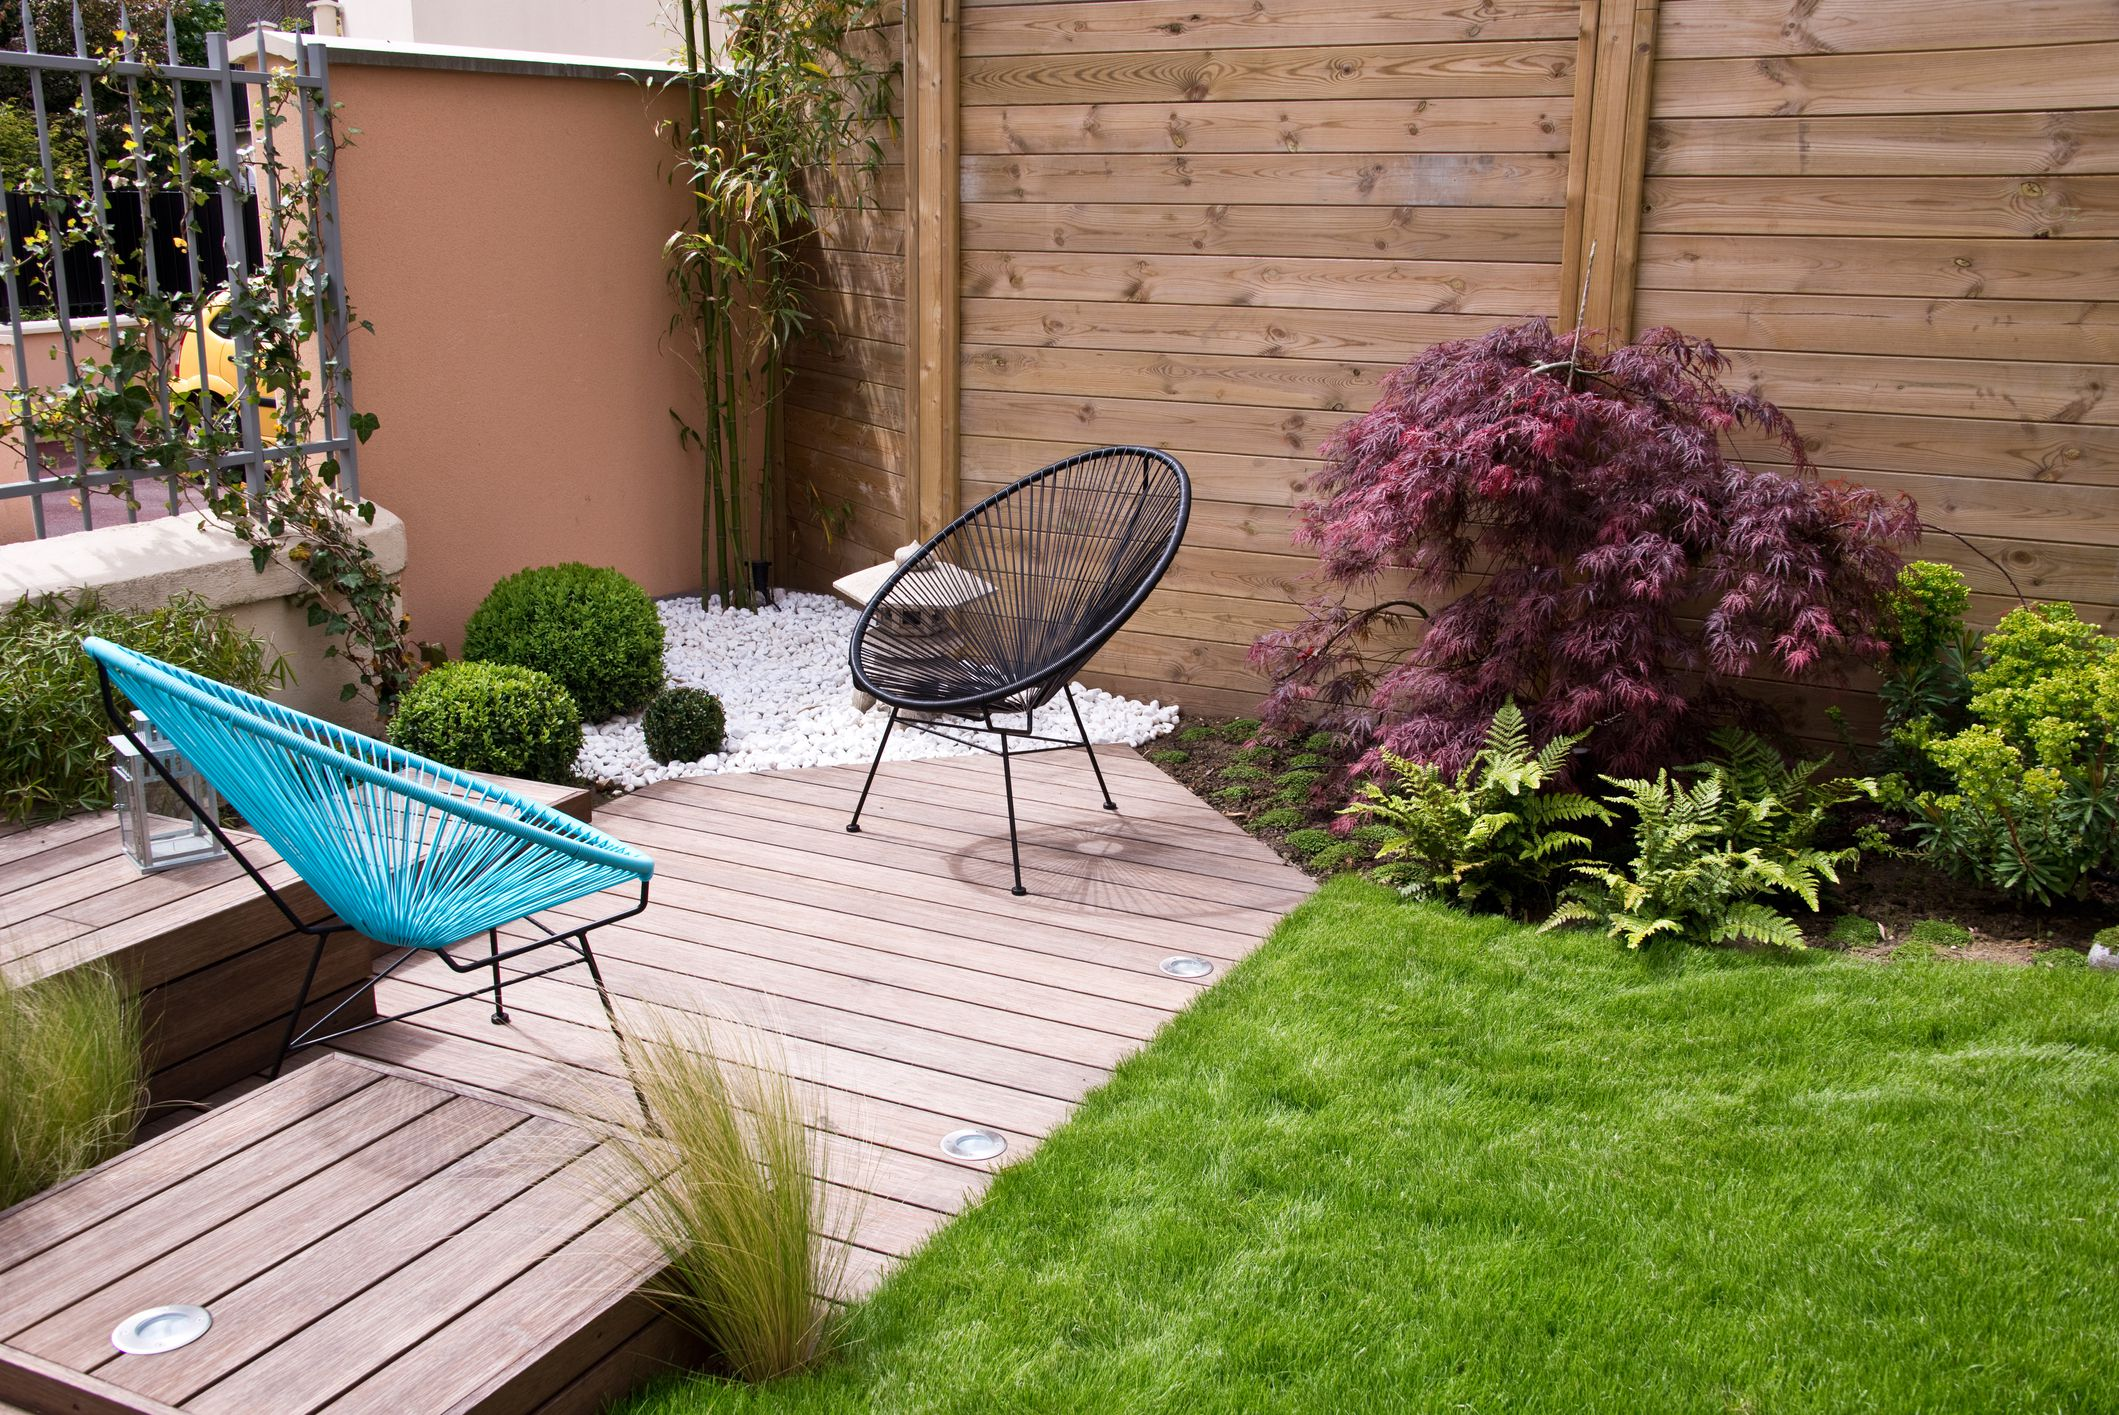 9 Small Garden Design Ideas On A Budget - Small Garden Ideas